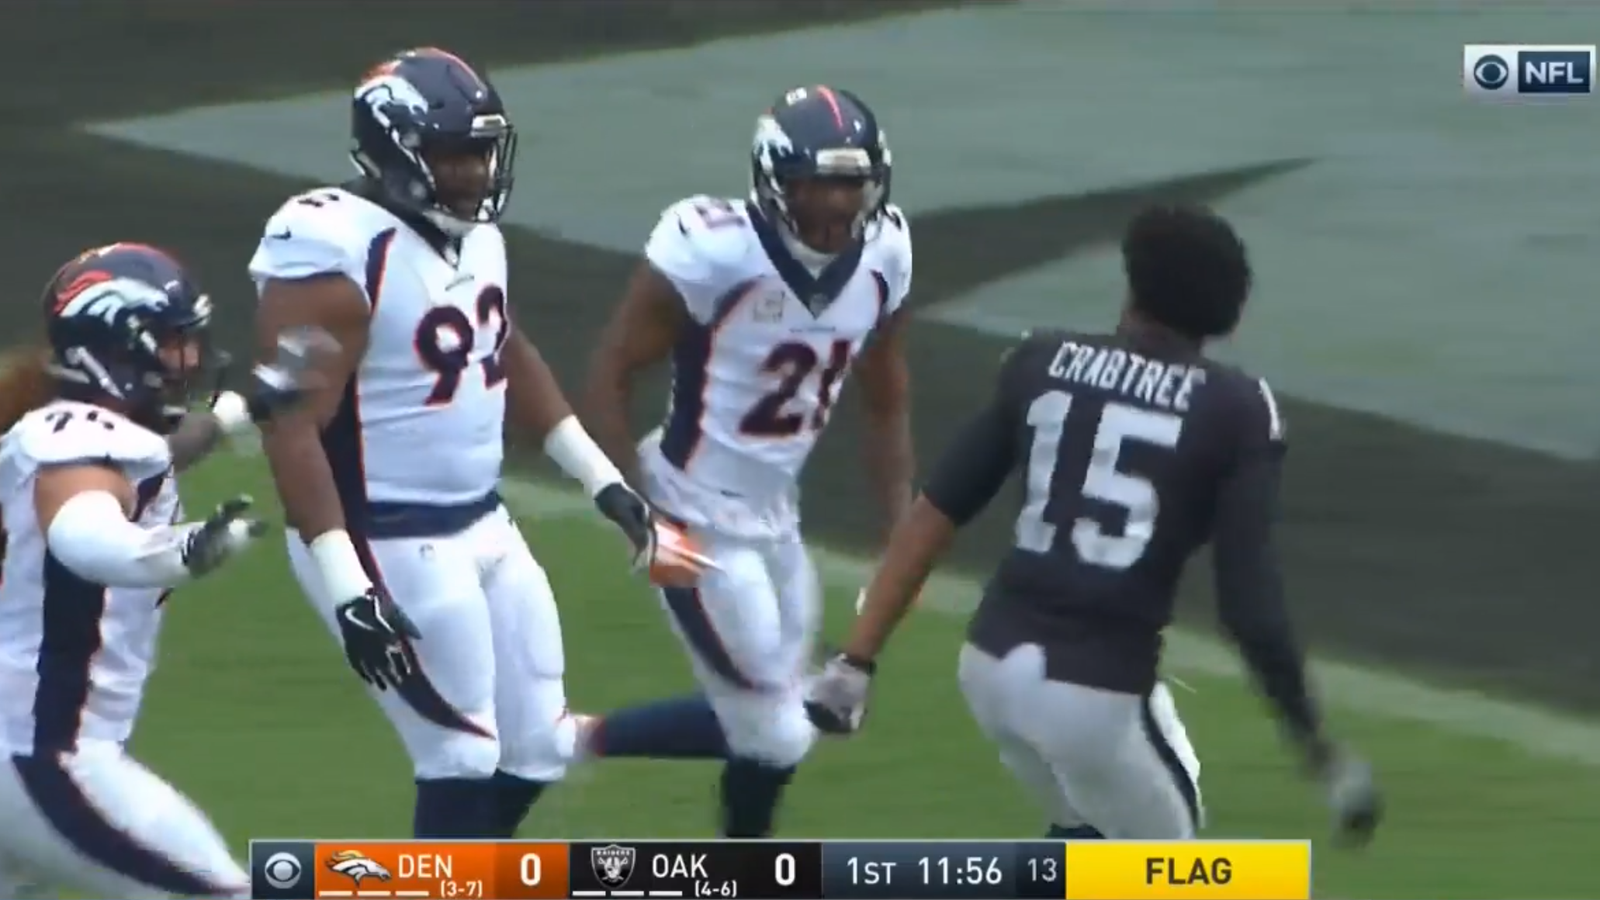 Aqib Talib And Michael Crabtree Both Suspended e Game For Chain